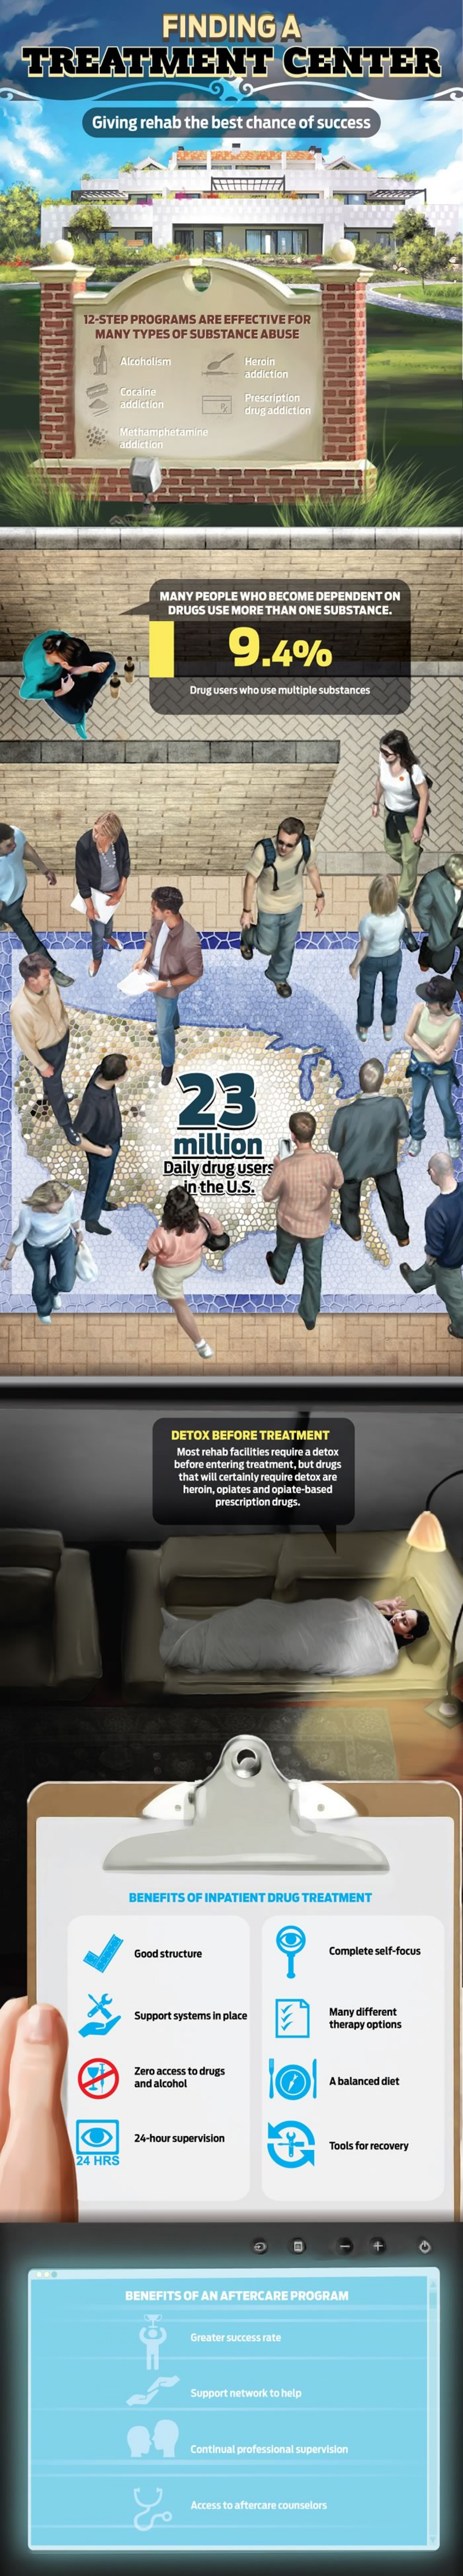 Finding An Addiction Treatment Center Infographic